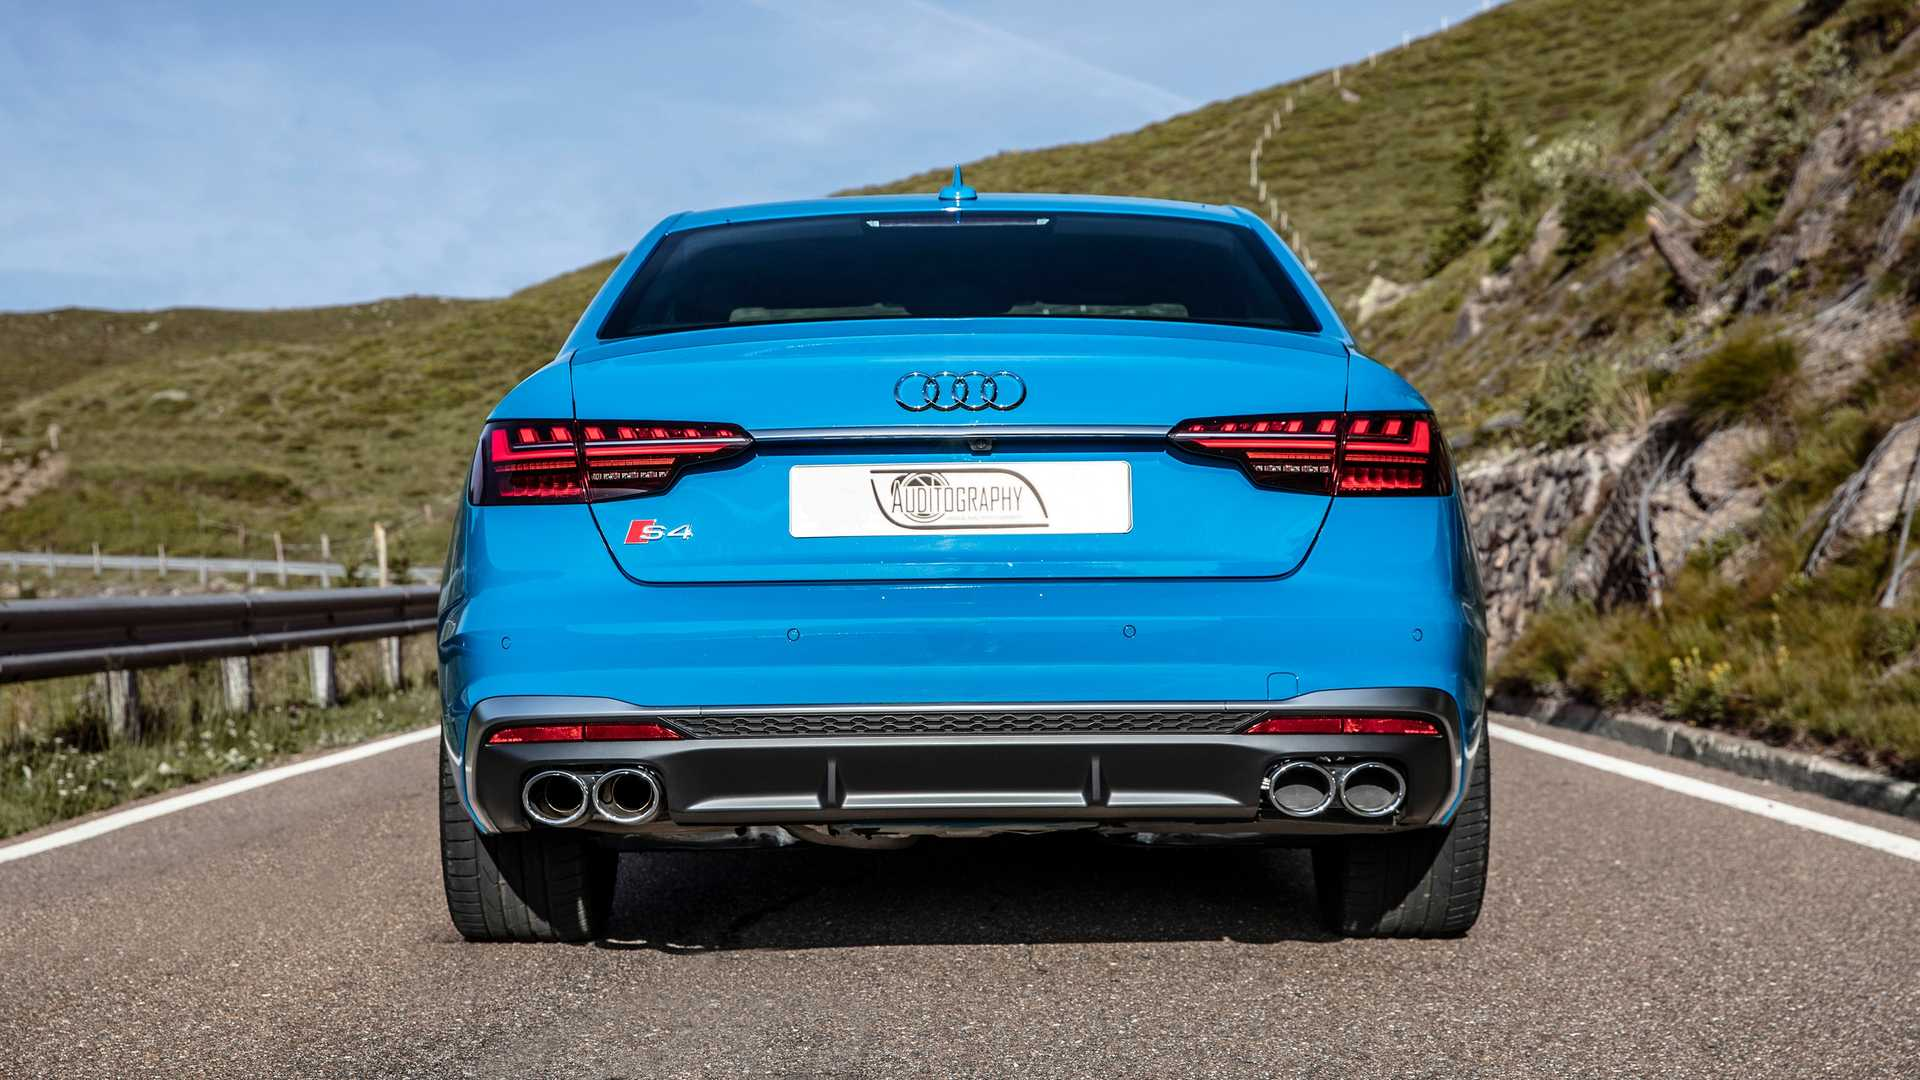 2020 Audi S4 Review.2020 Audi S4 Sedan Avant Videos Put Spotlight On The Major